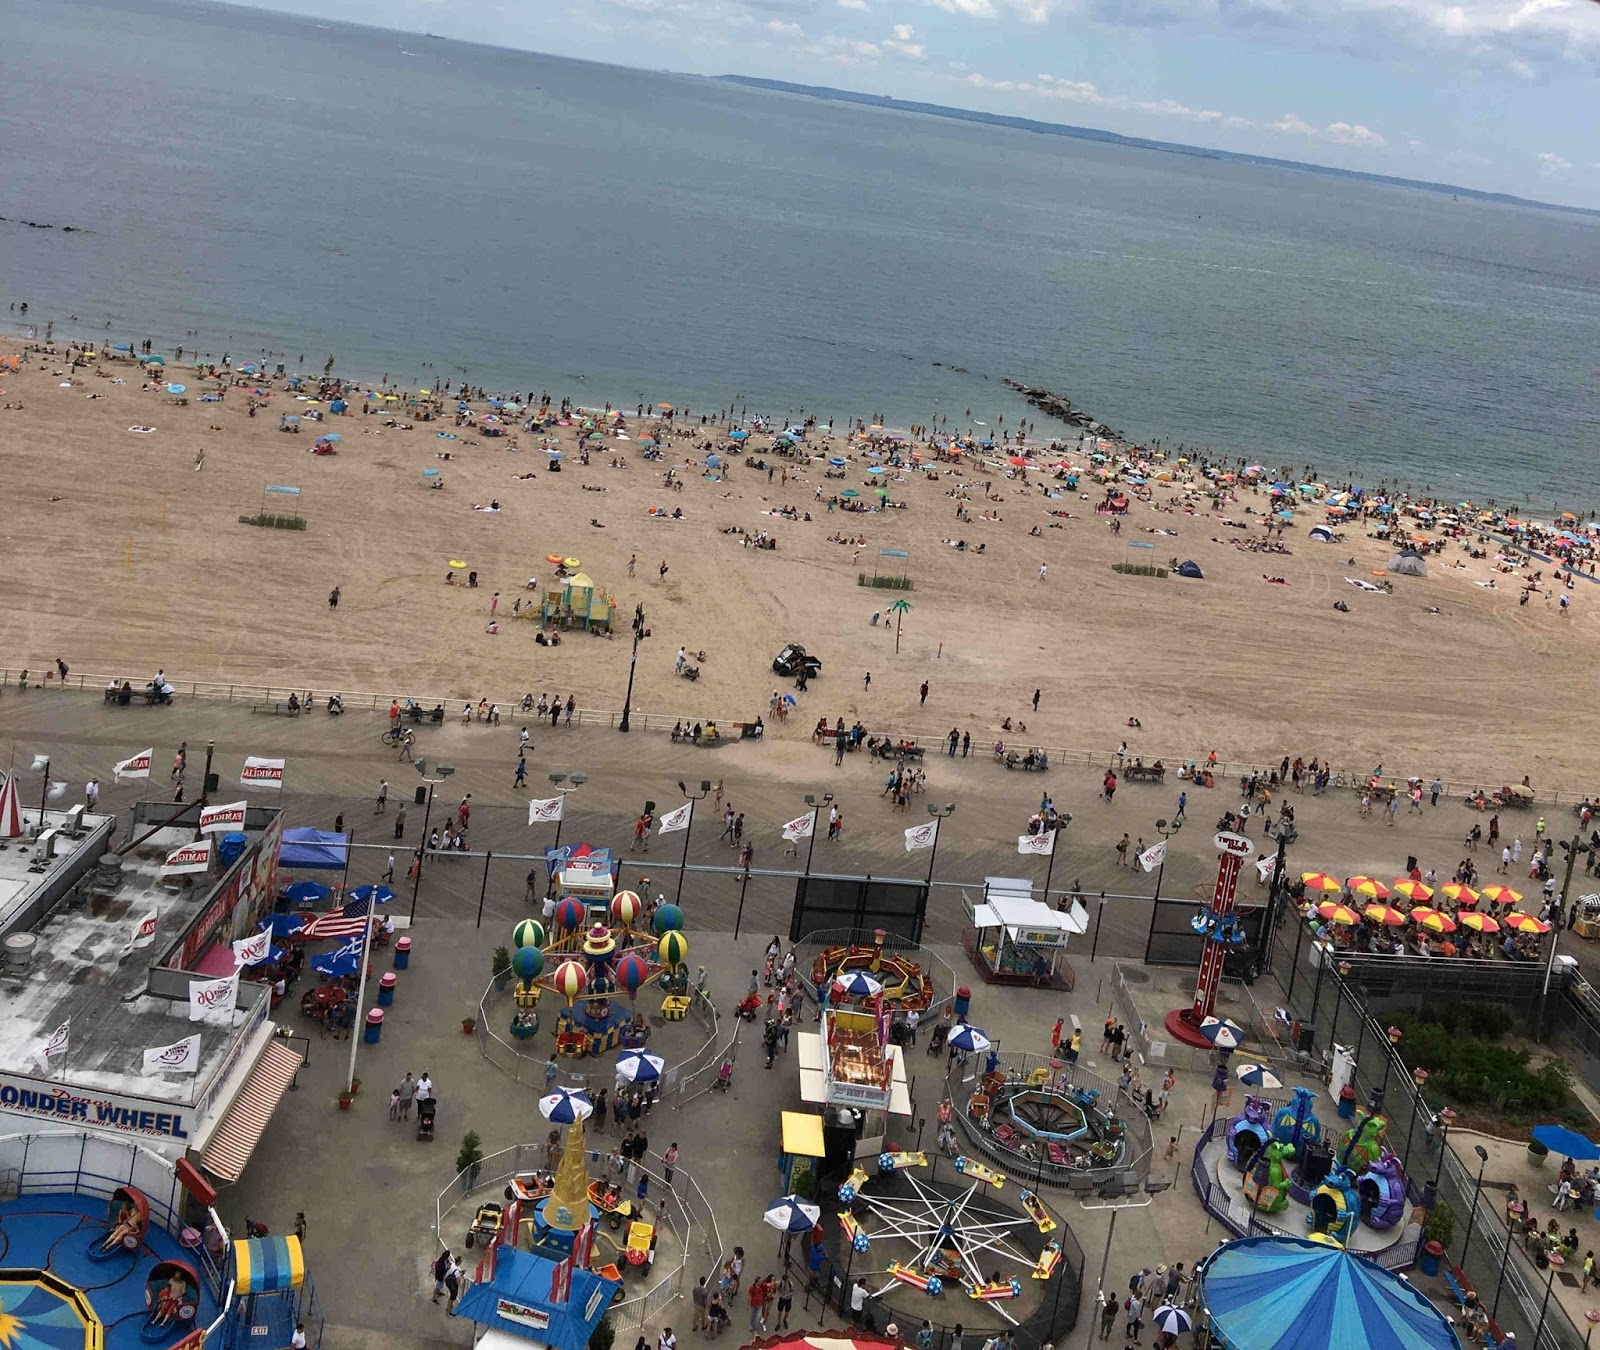 For More Information About Coney Island You Can The Fun Map And Check Out All Attractions Even If Cannot Make It To